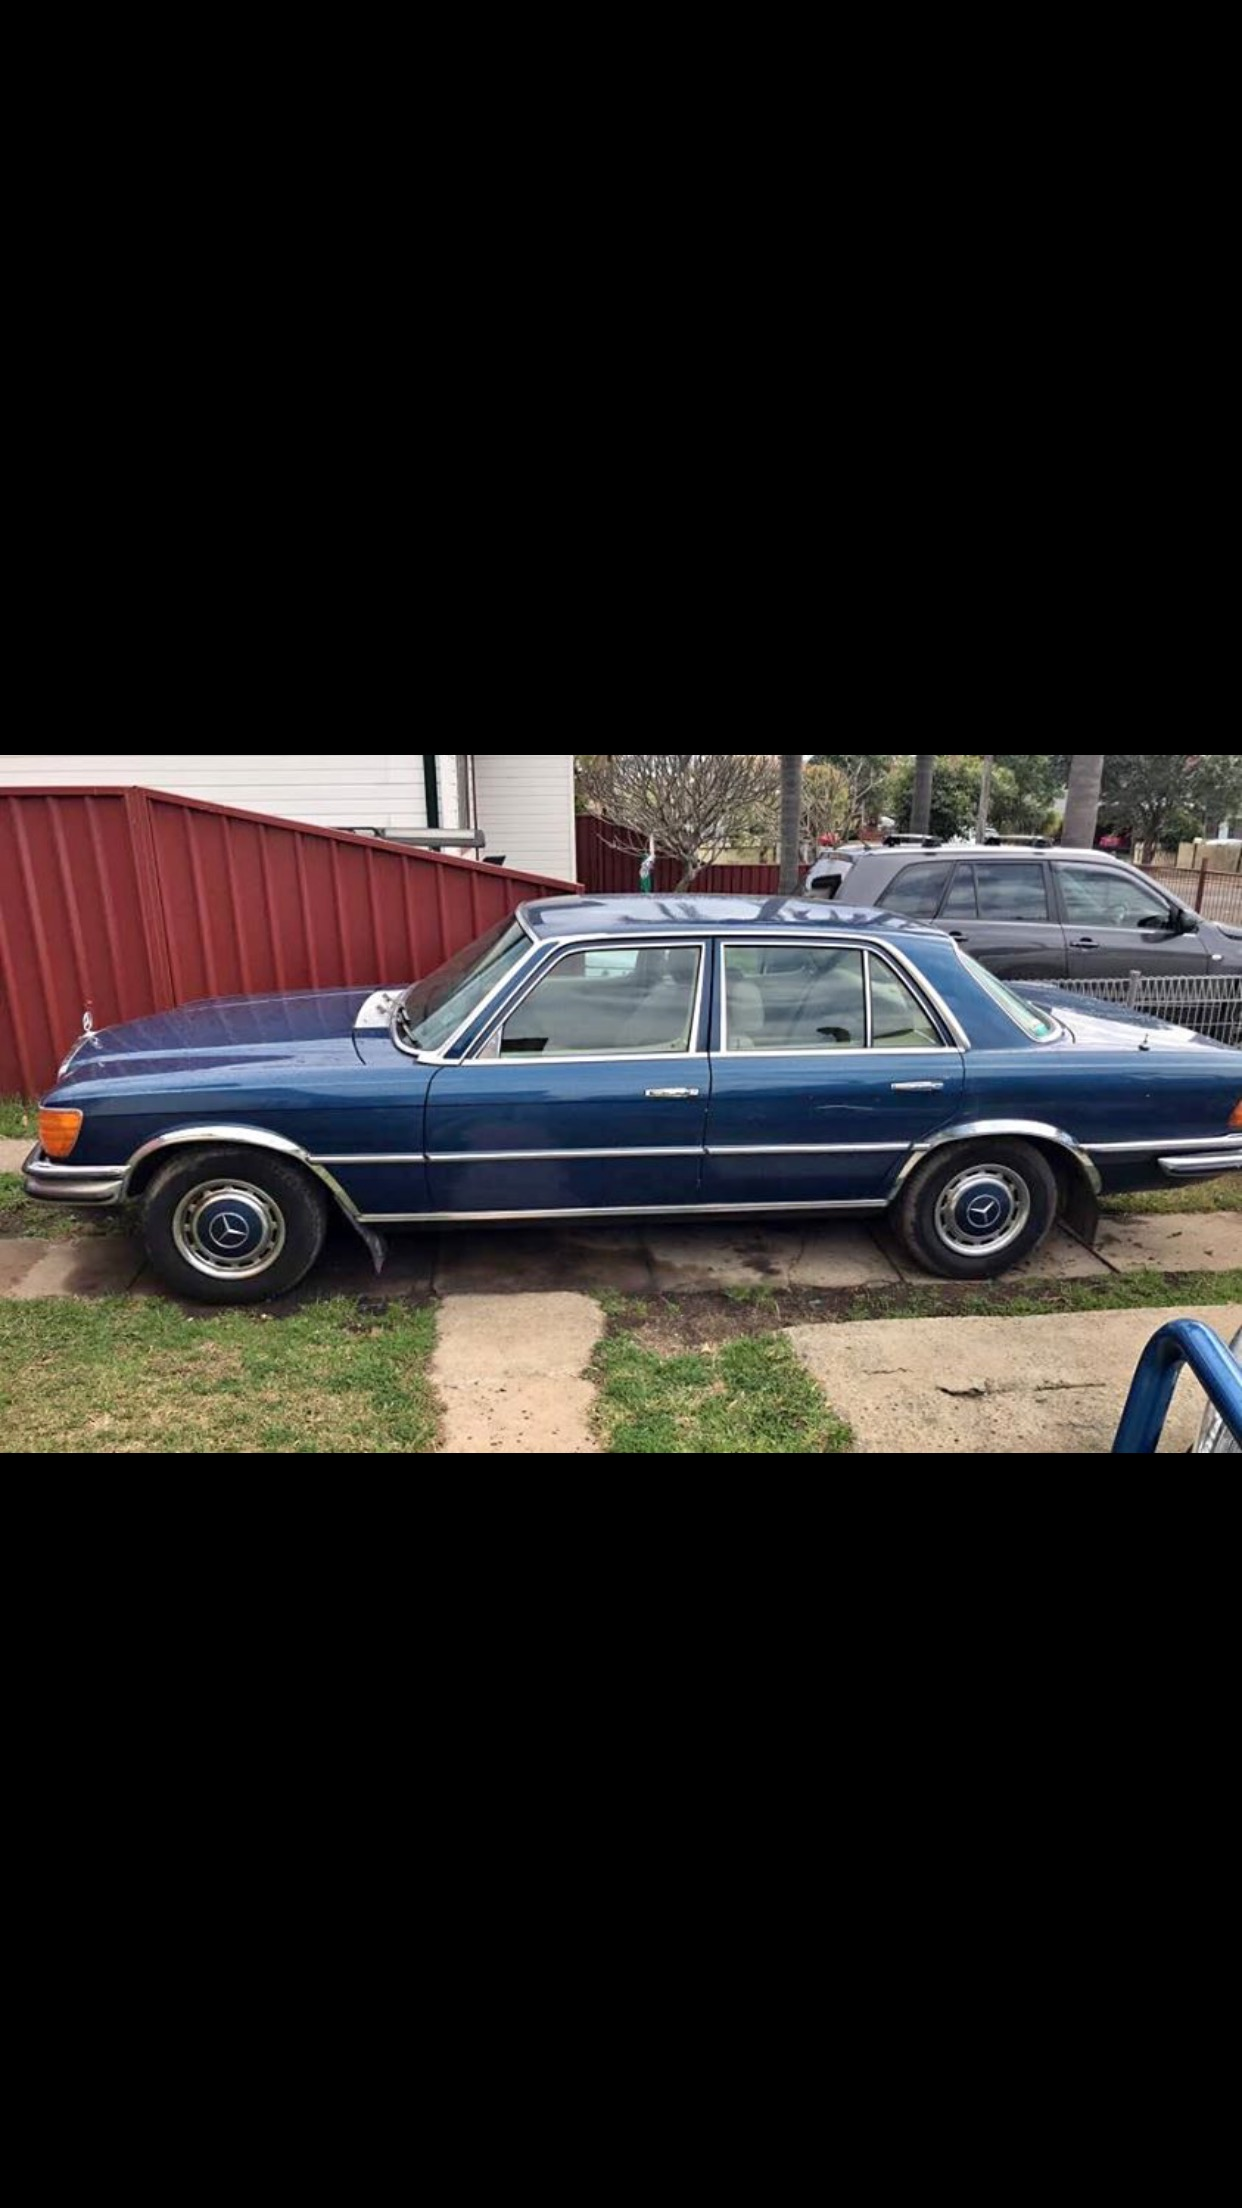 450se mercedes 1976 v8kms172 Excellent condition mechanically a 1 call me for 0456575657 Prize not negotiable